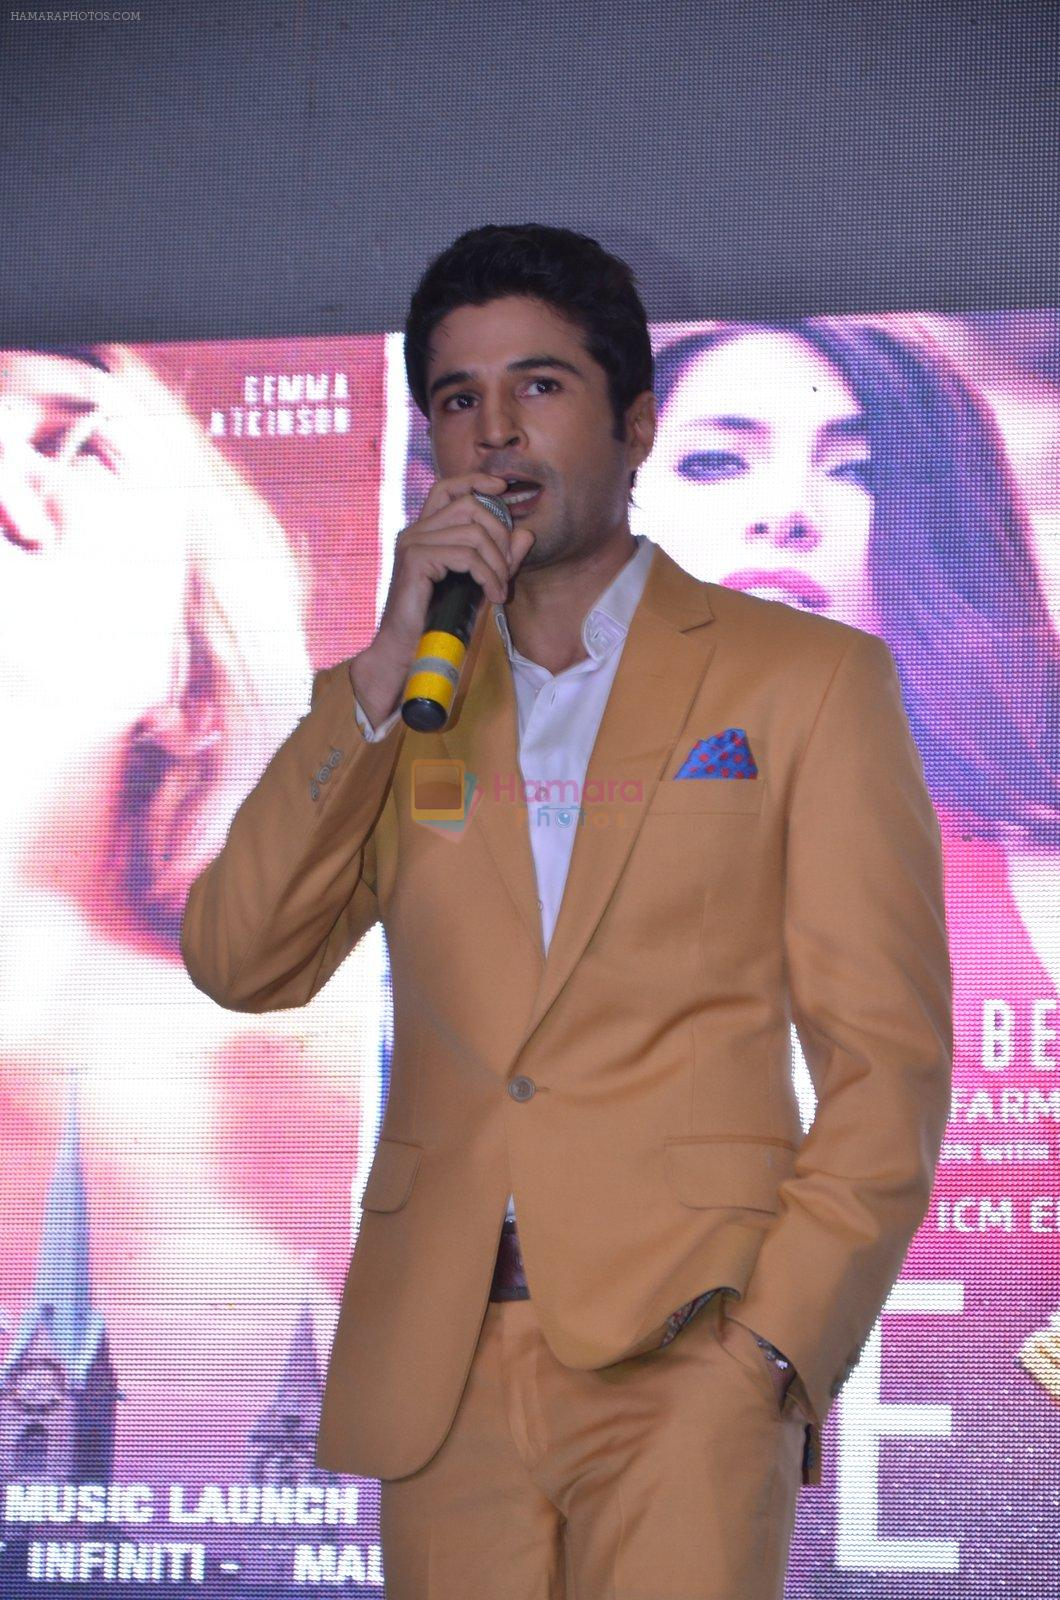 Rajeev Khandelwal during the music launch of the film Fever in Mumbai, India on June 24, 2016